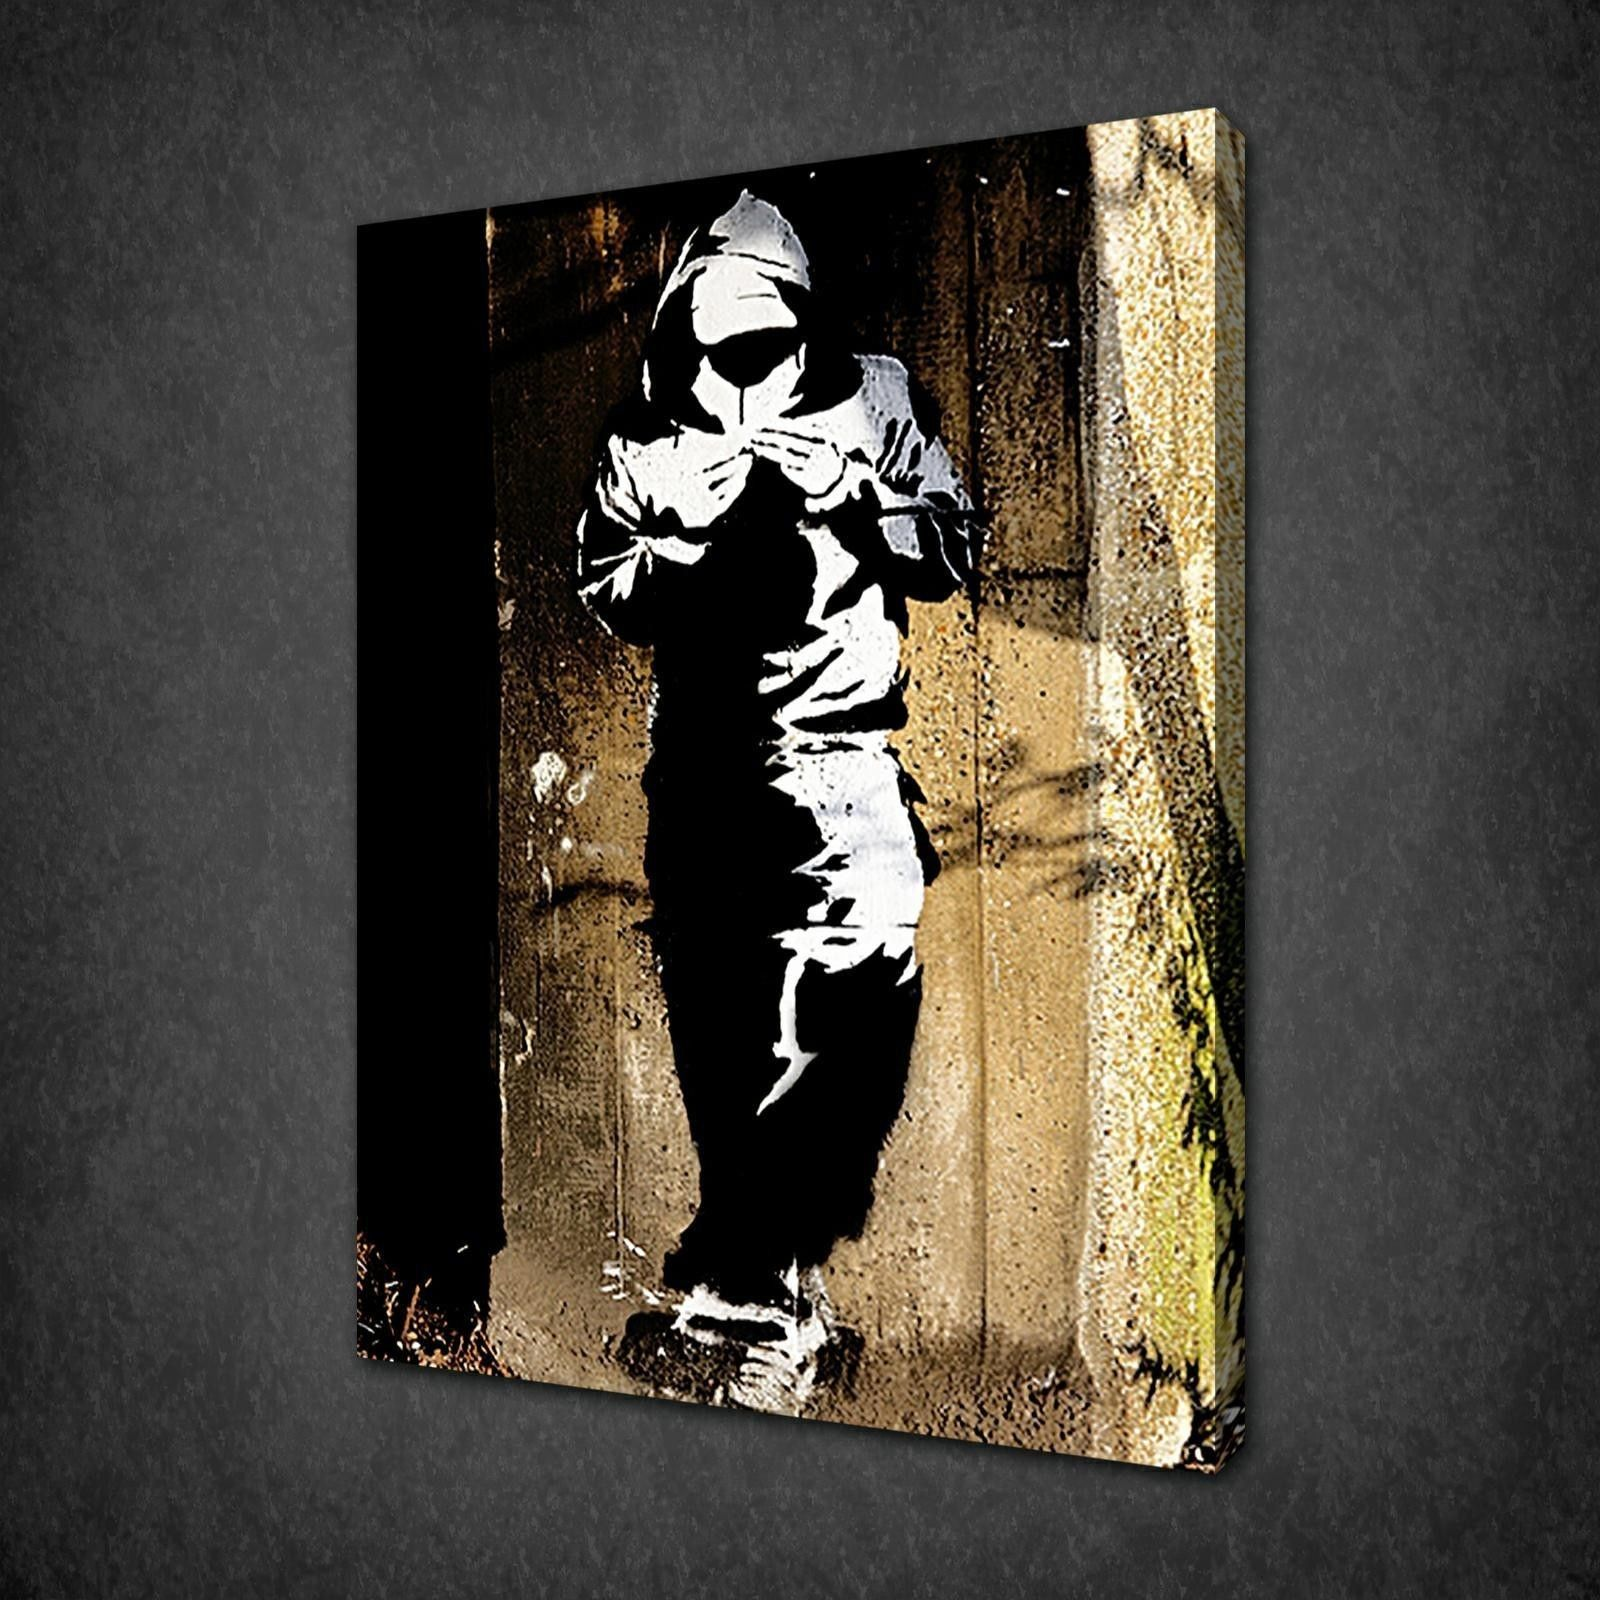 Banksy canal hoodie graffiti canvas wall art pictures prints